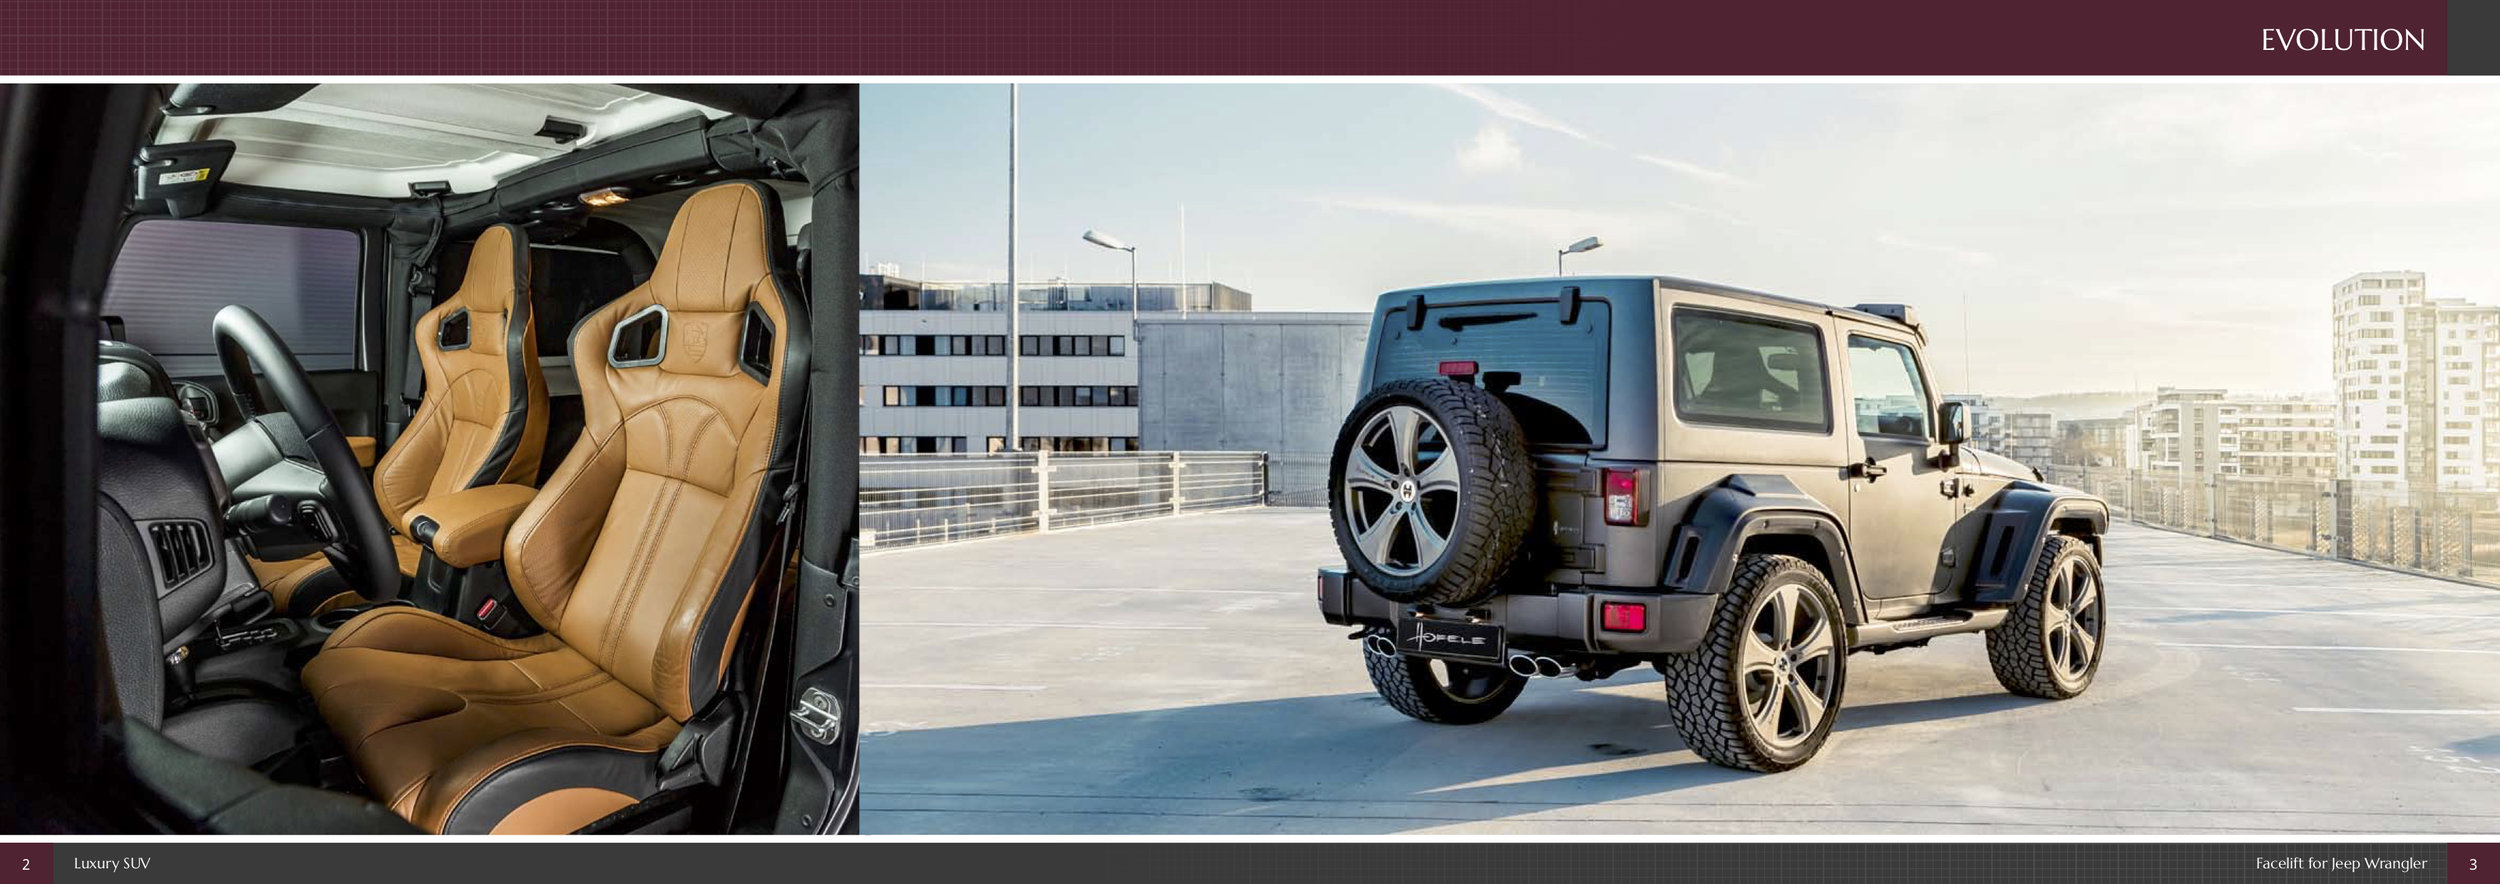 HOFELE Brochure for Jeep Wrangler,  EVOLUTION, February 20127.jpg